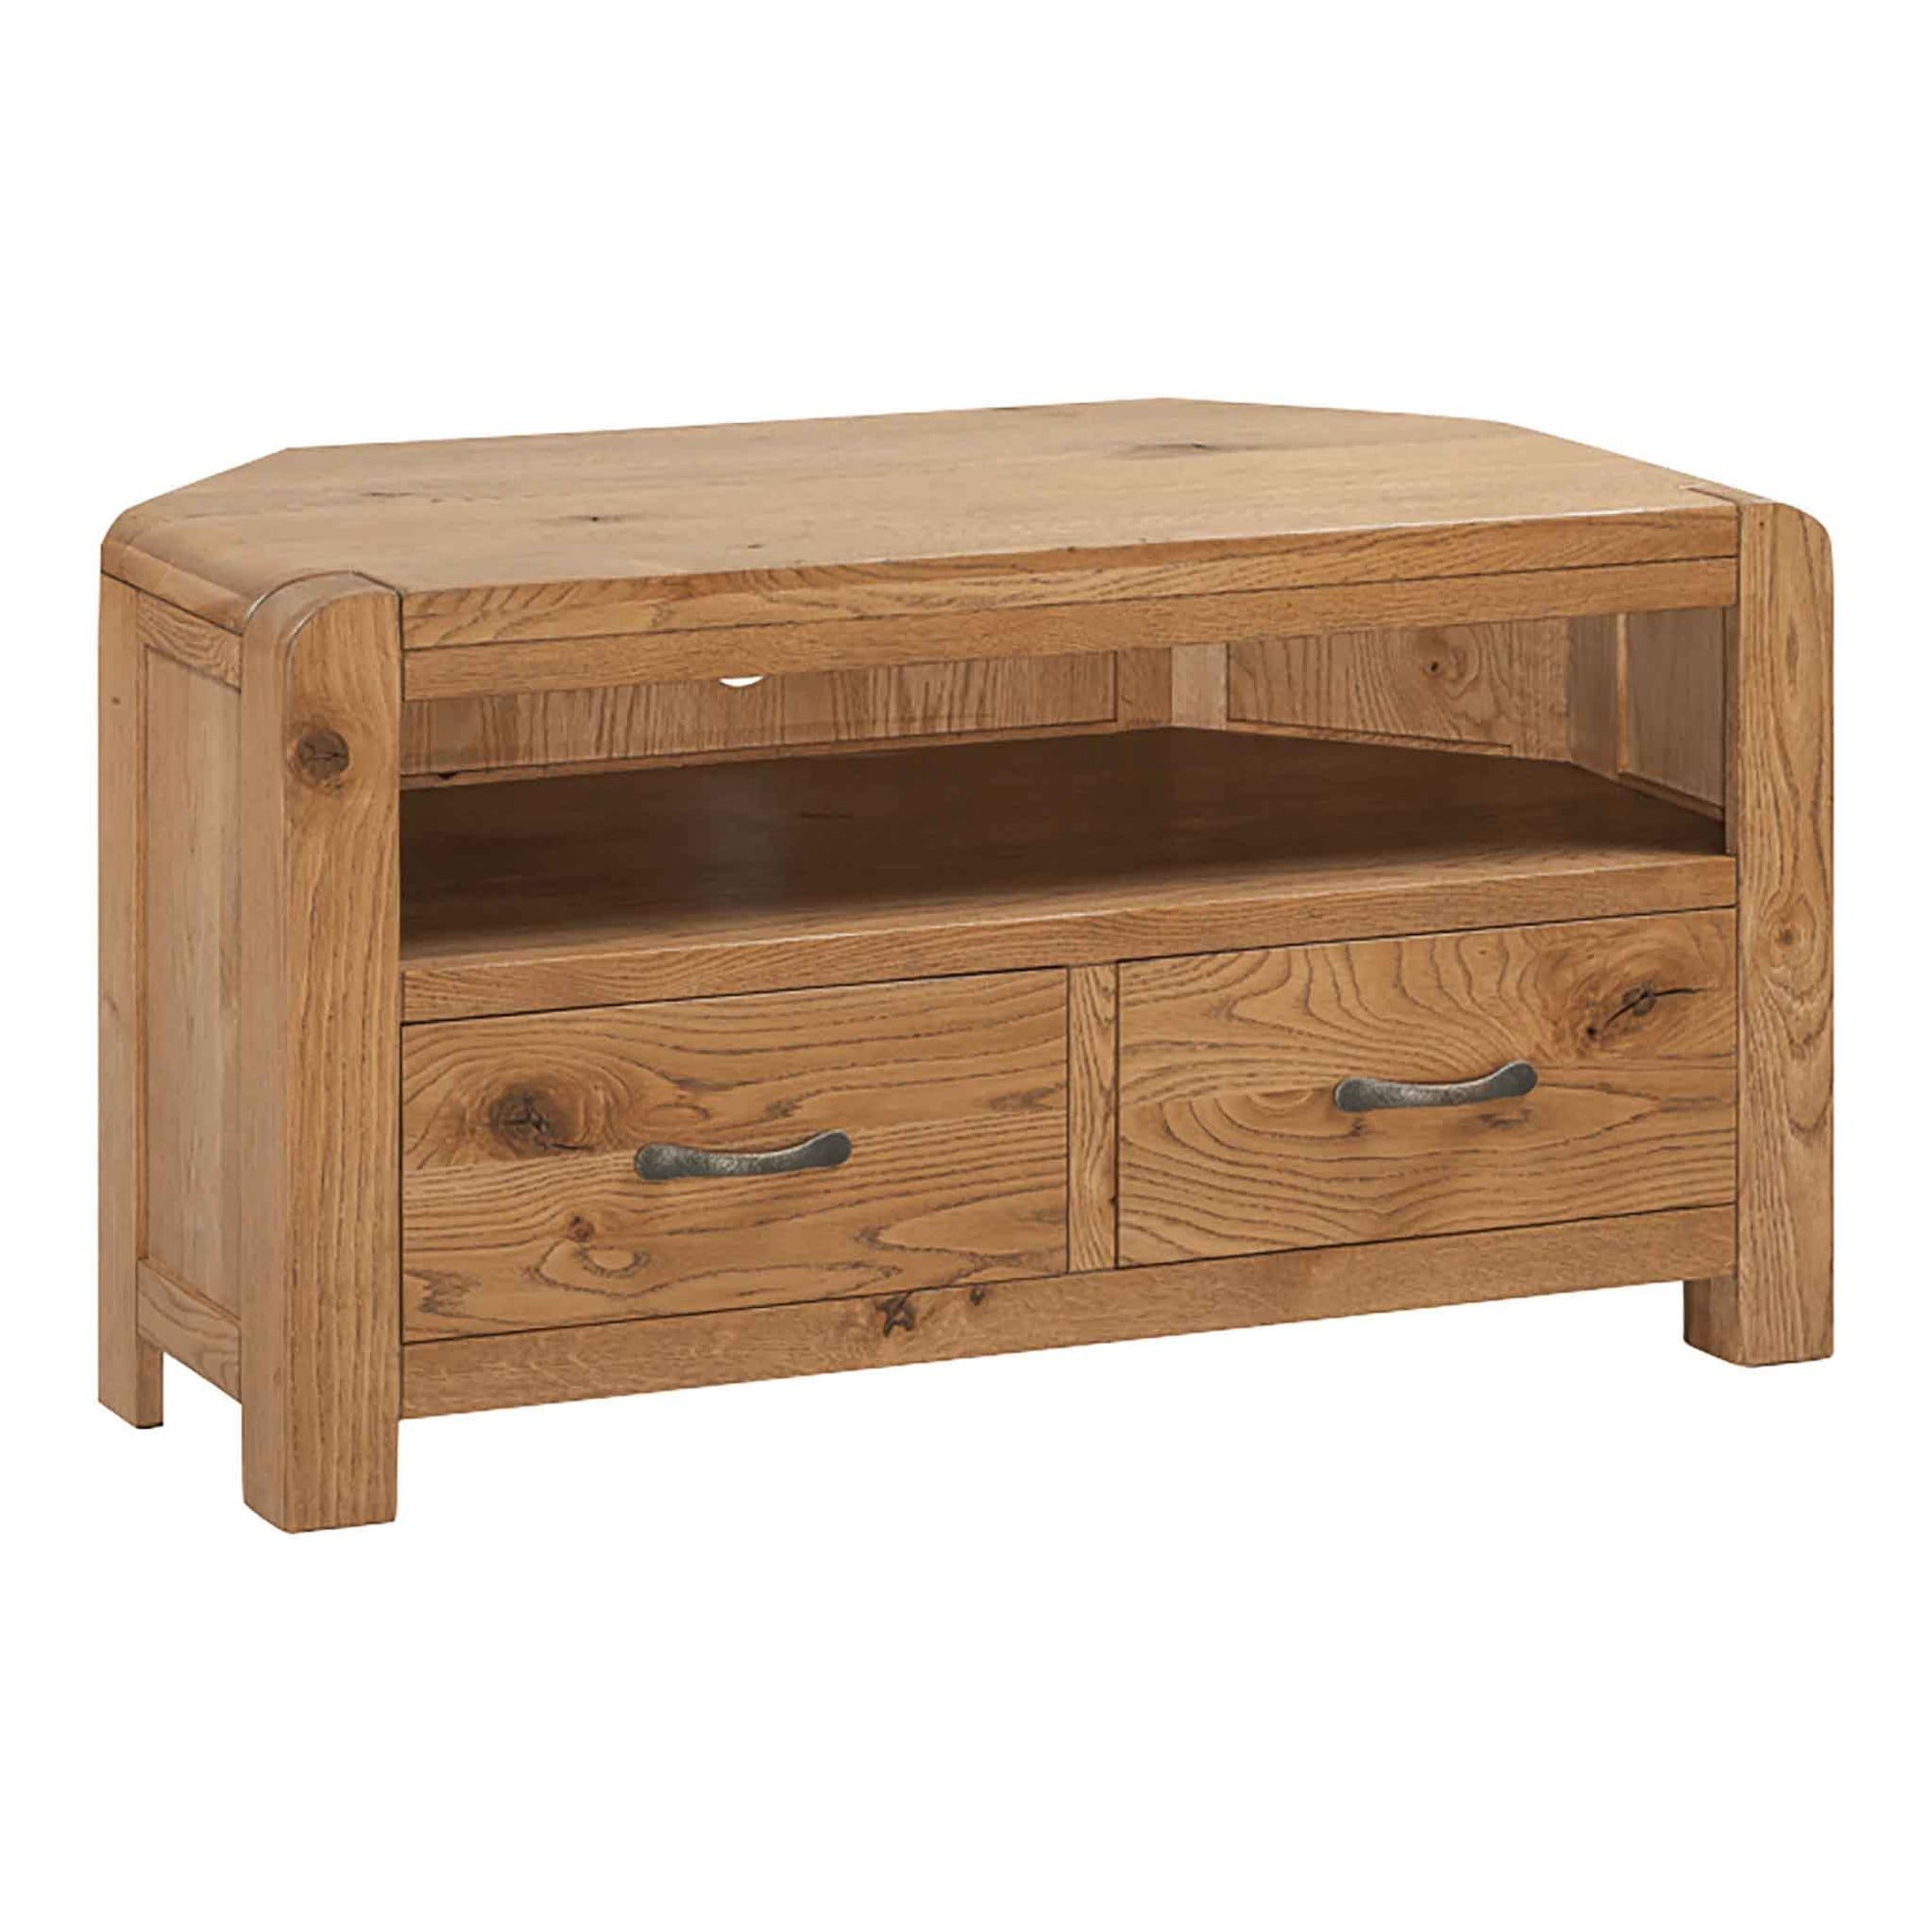 The Capri Oak Rustic Corner TV Stand Storage Unit from Roseland Furniture